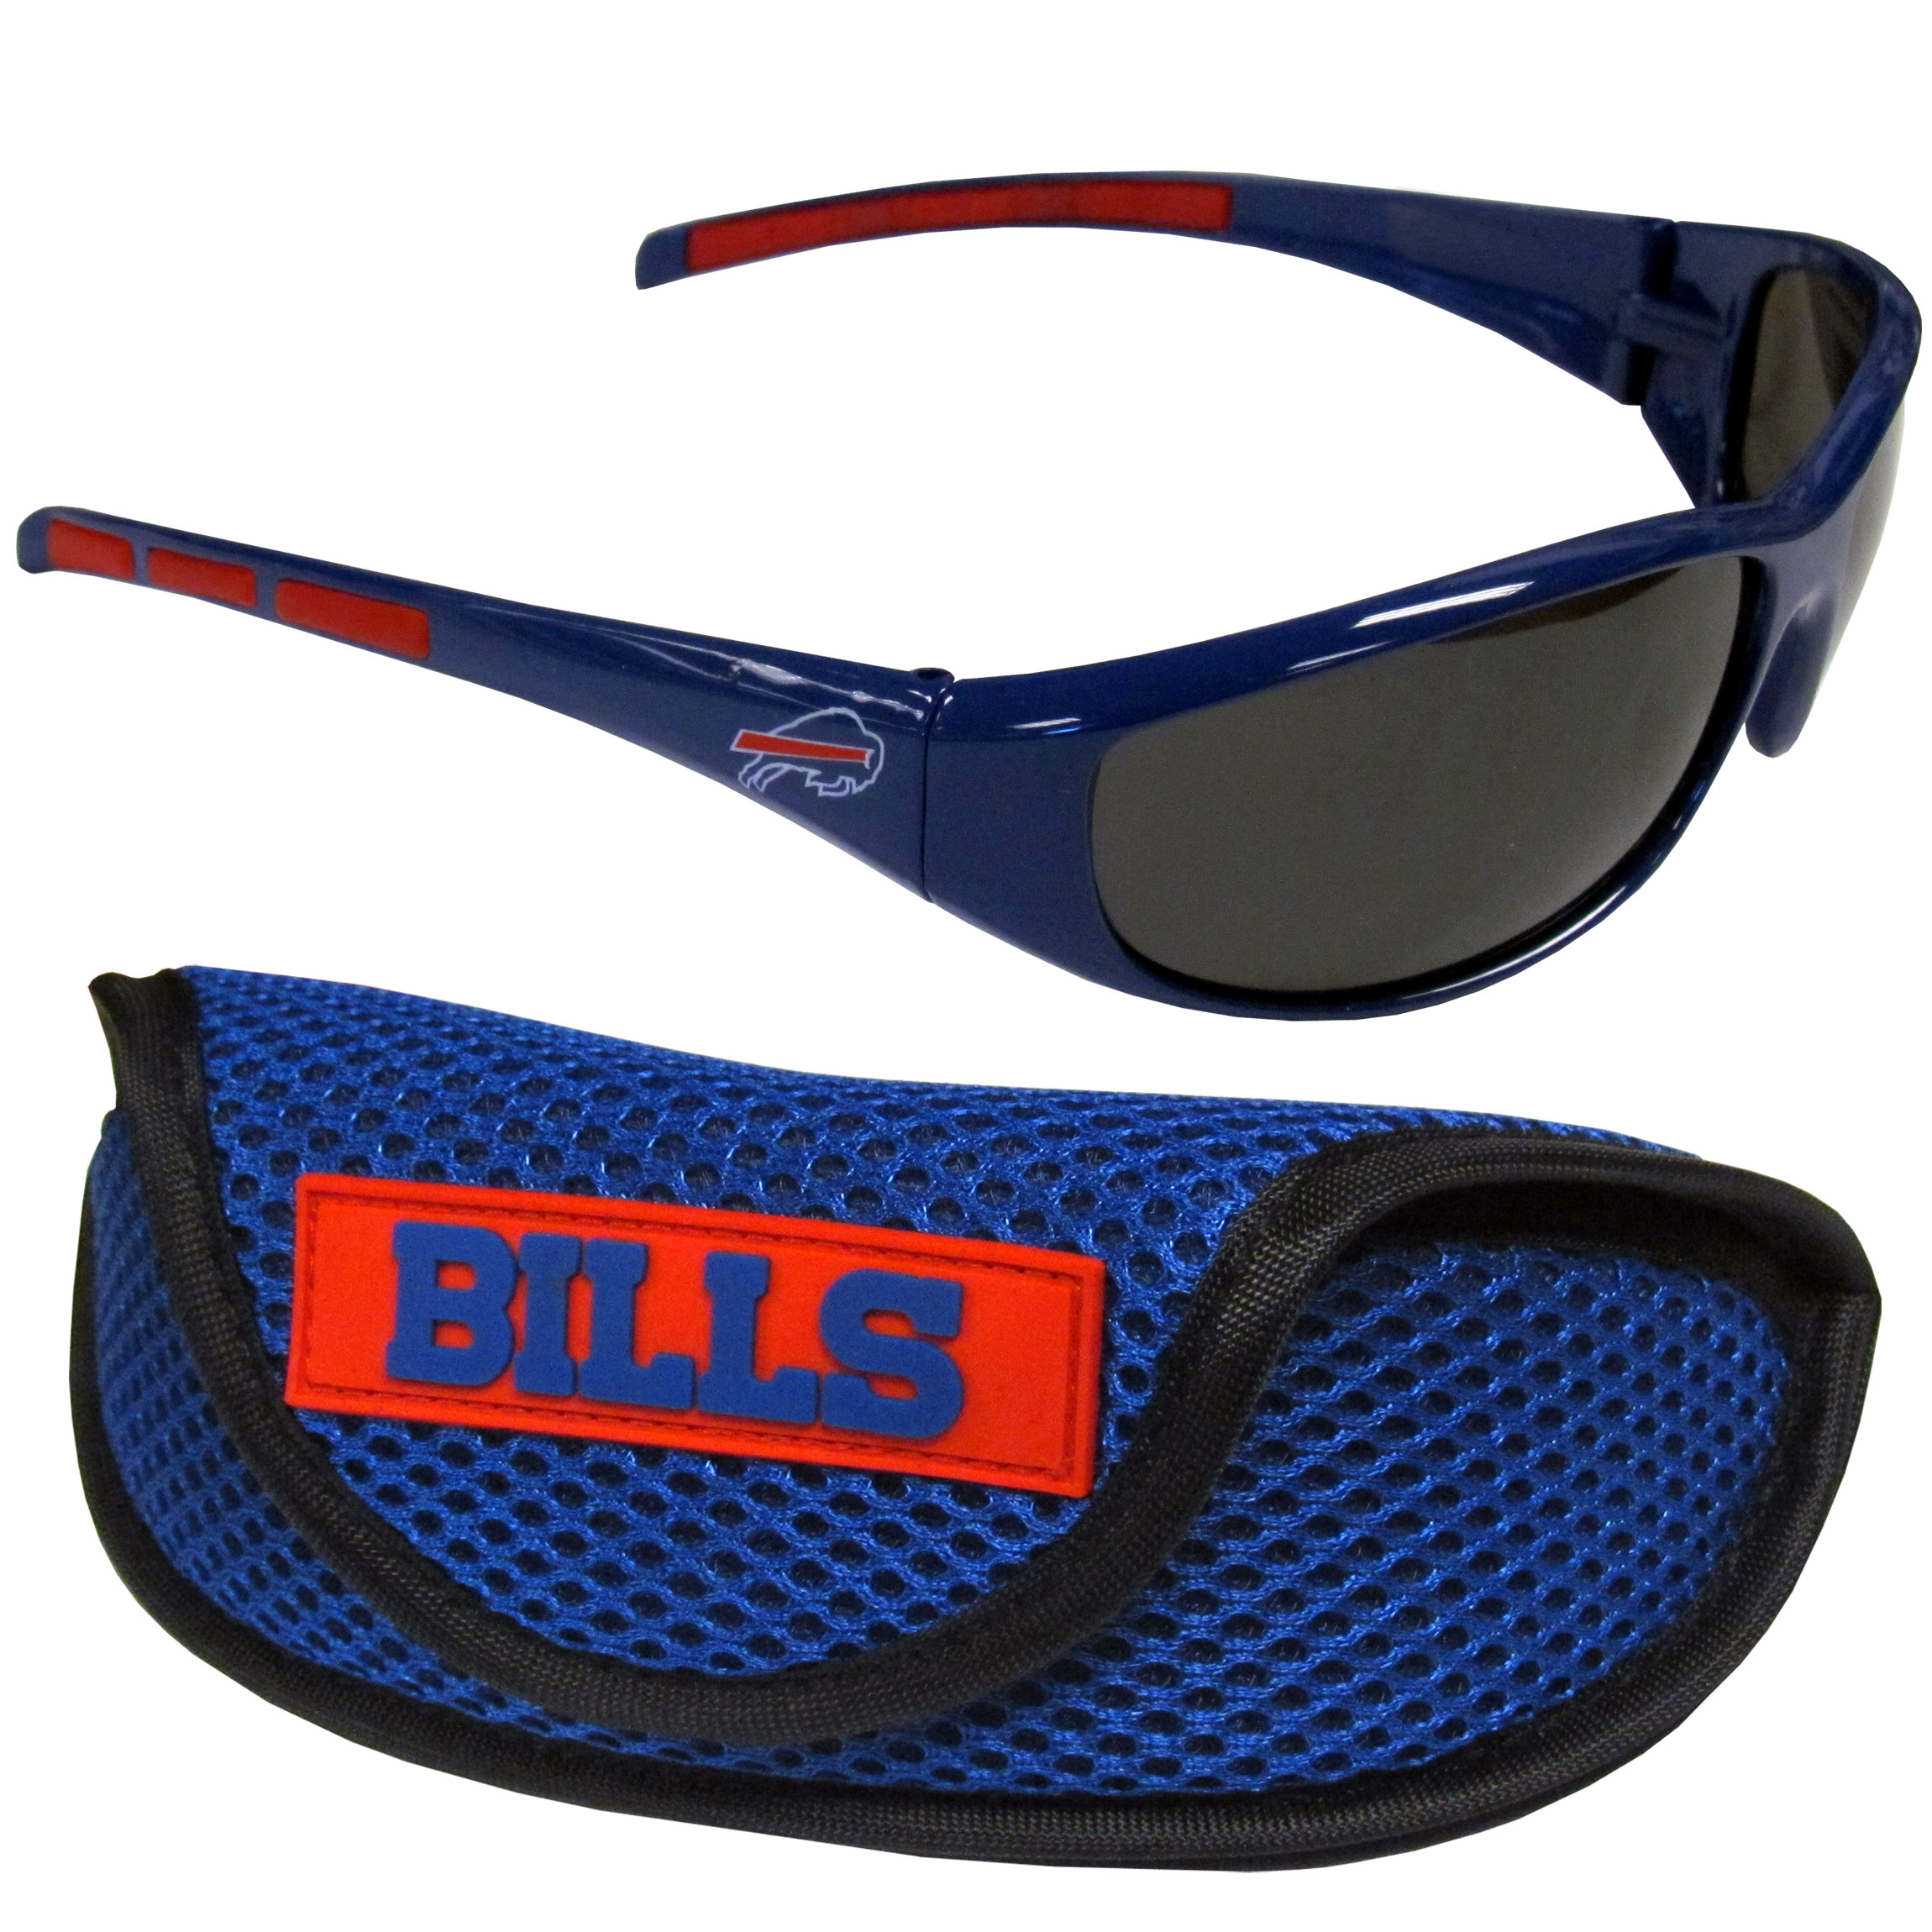 Buffalo Bills Wrap Sunglass and Case Set - This great set includes a high quality pair of Buffalo Bills wrap sunglasses and sport carrying case.